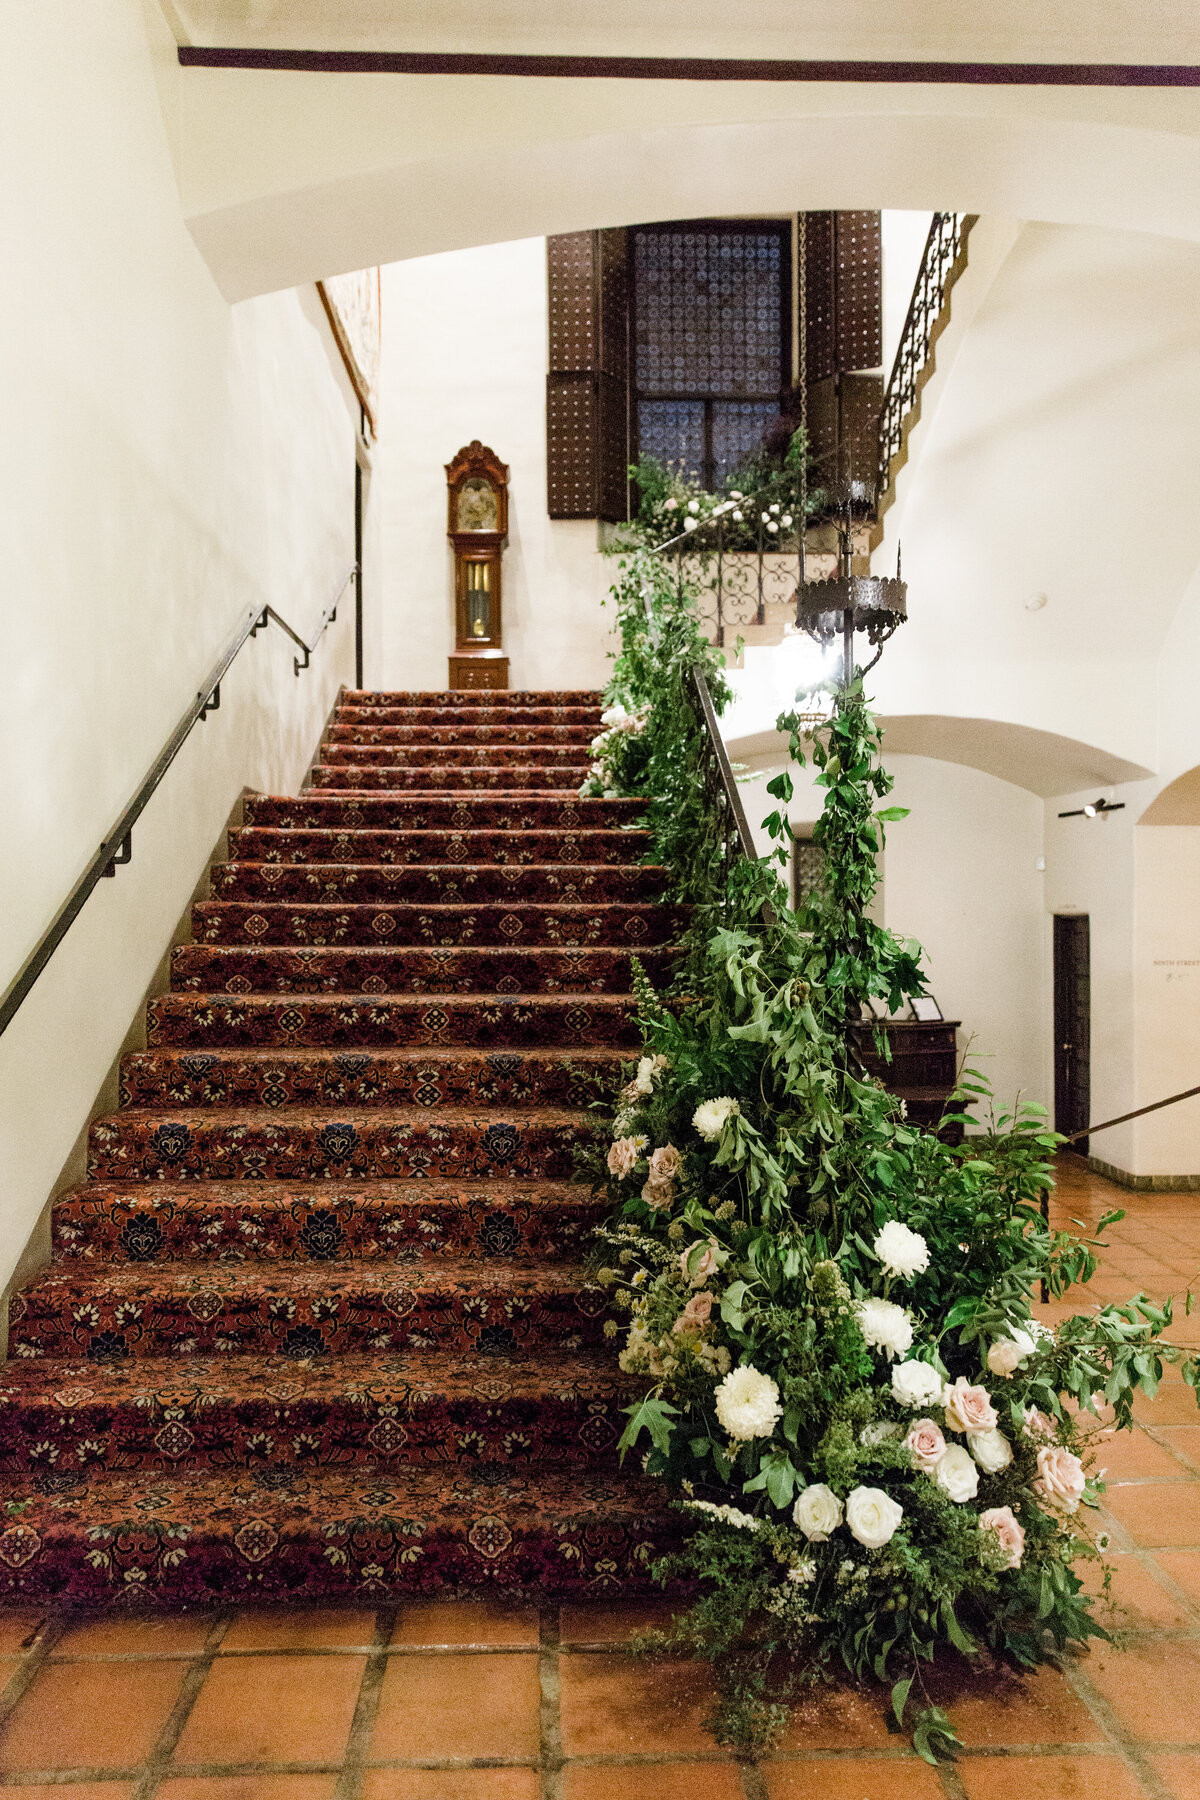 a long staircase decorated with flowers